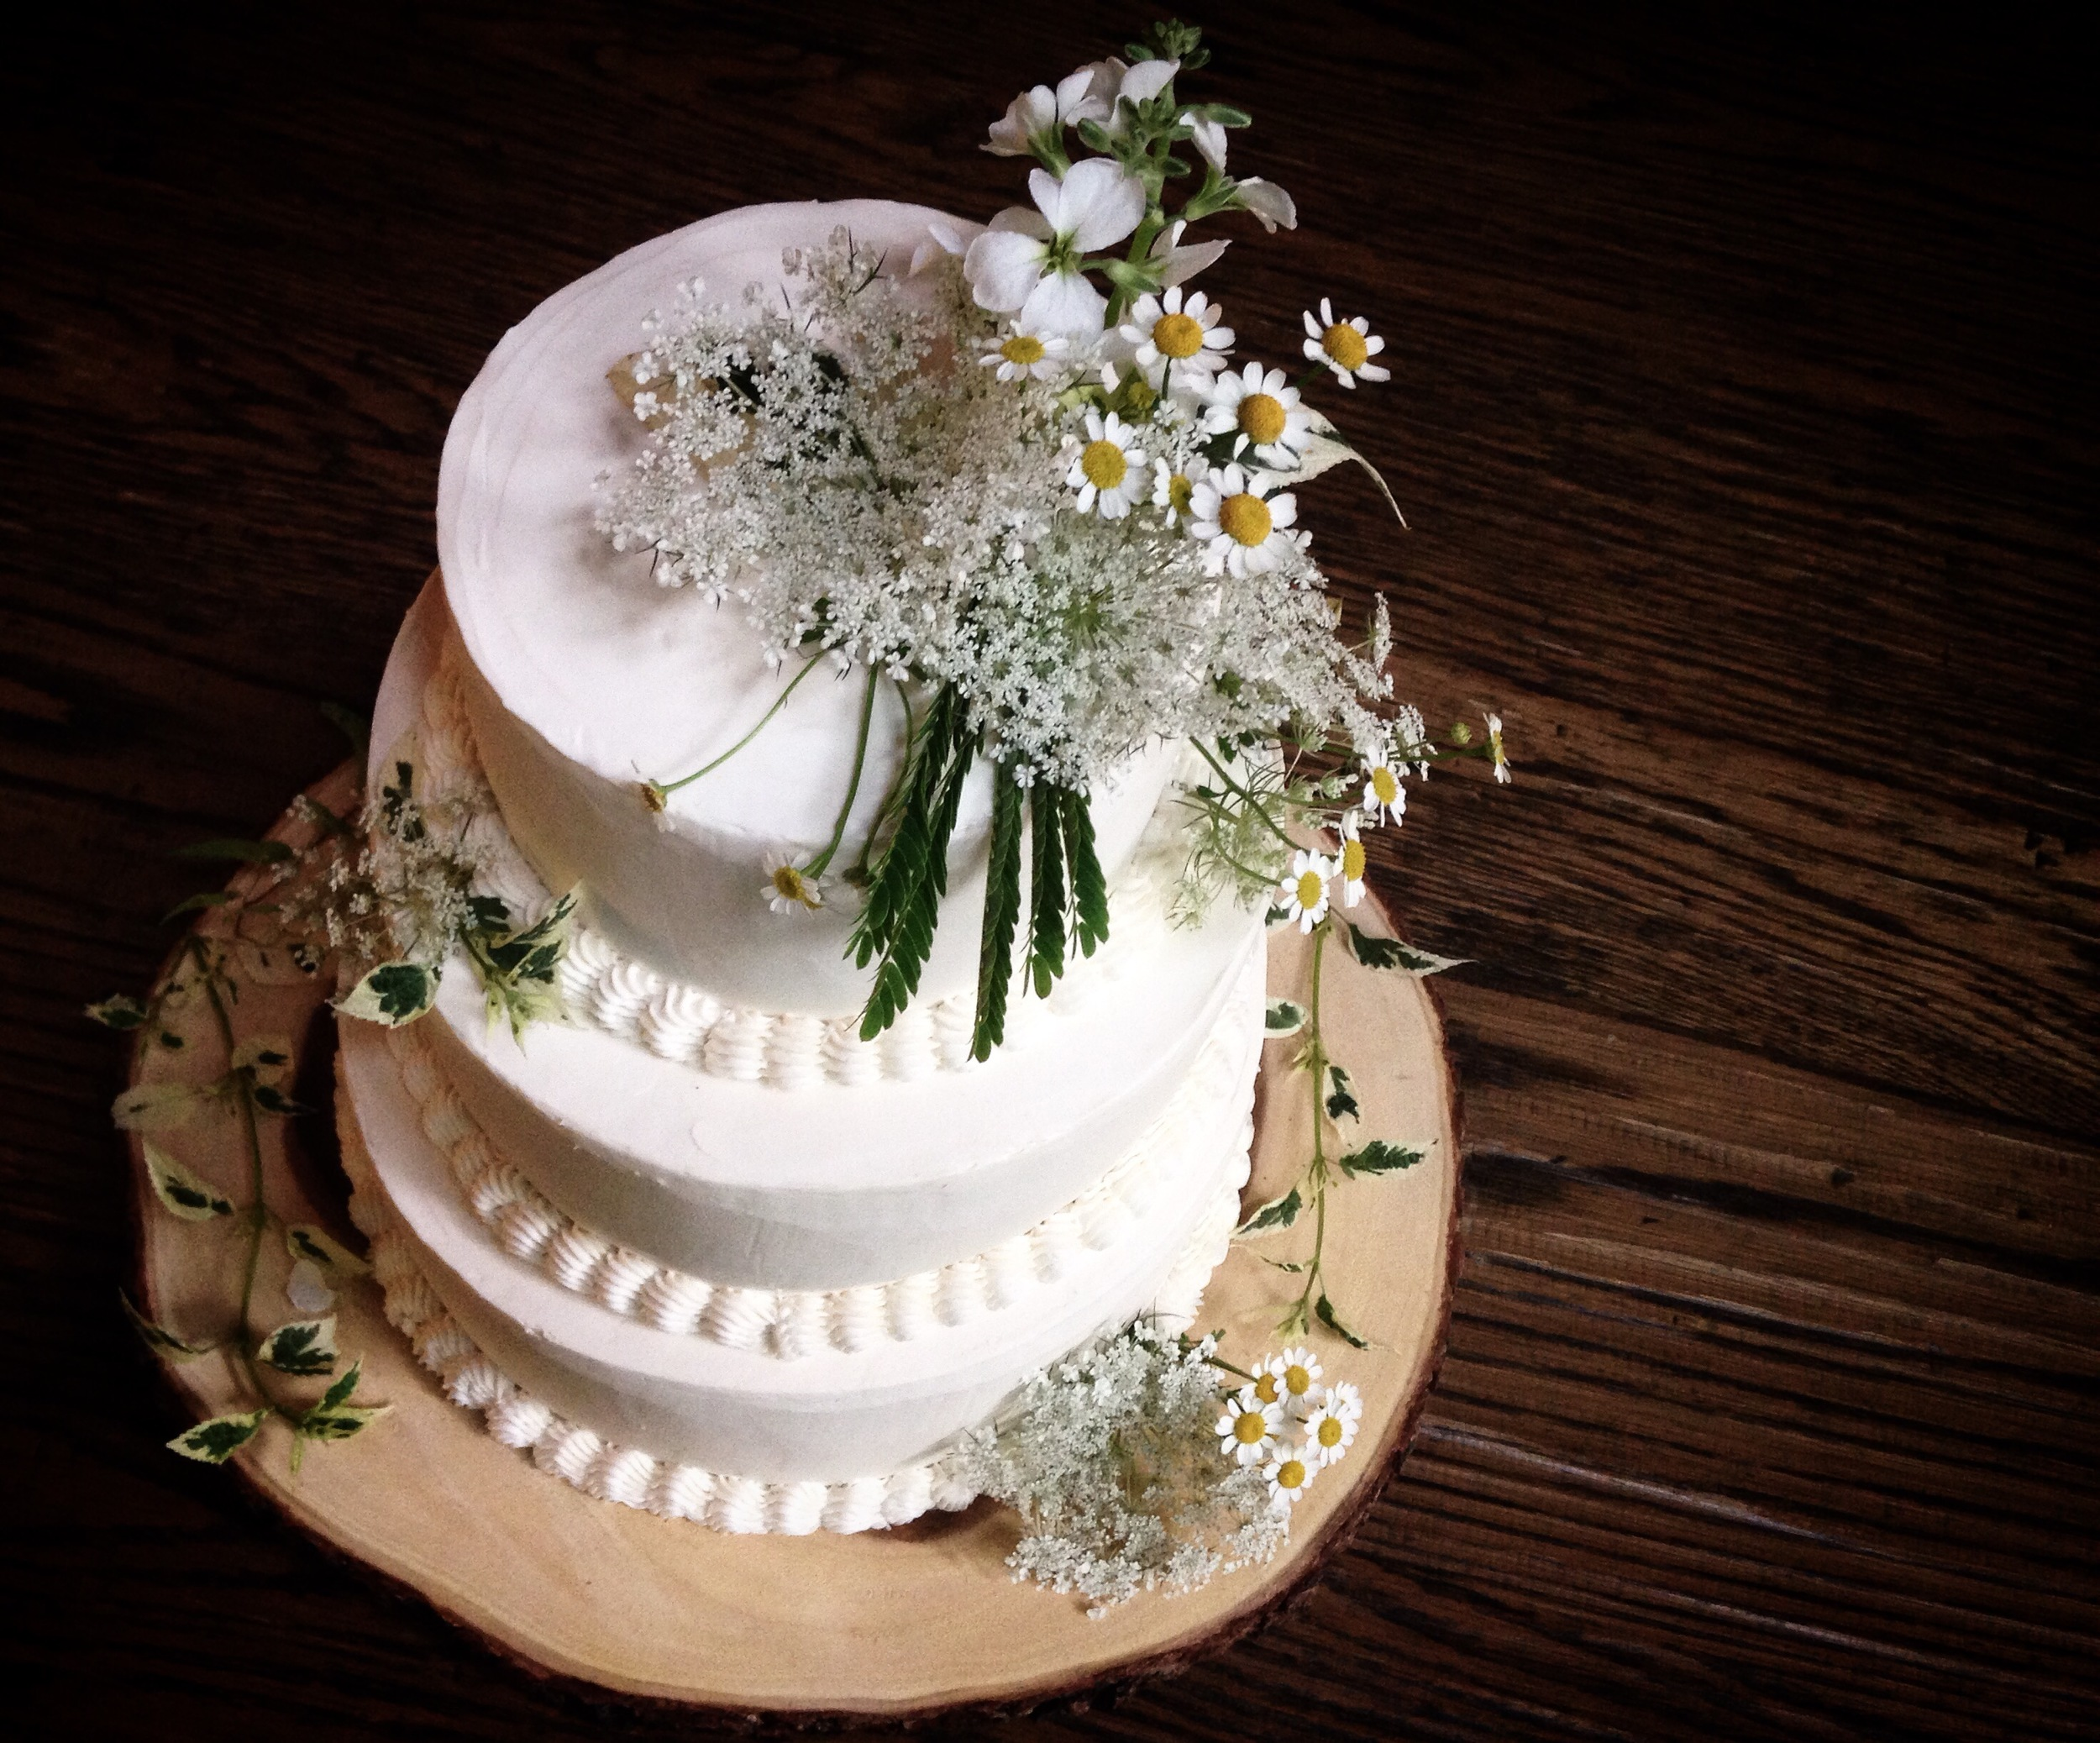 Cake adorned with flowers by molly reeder